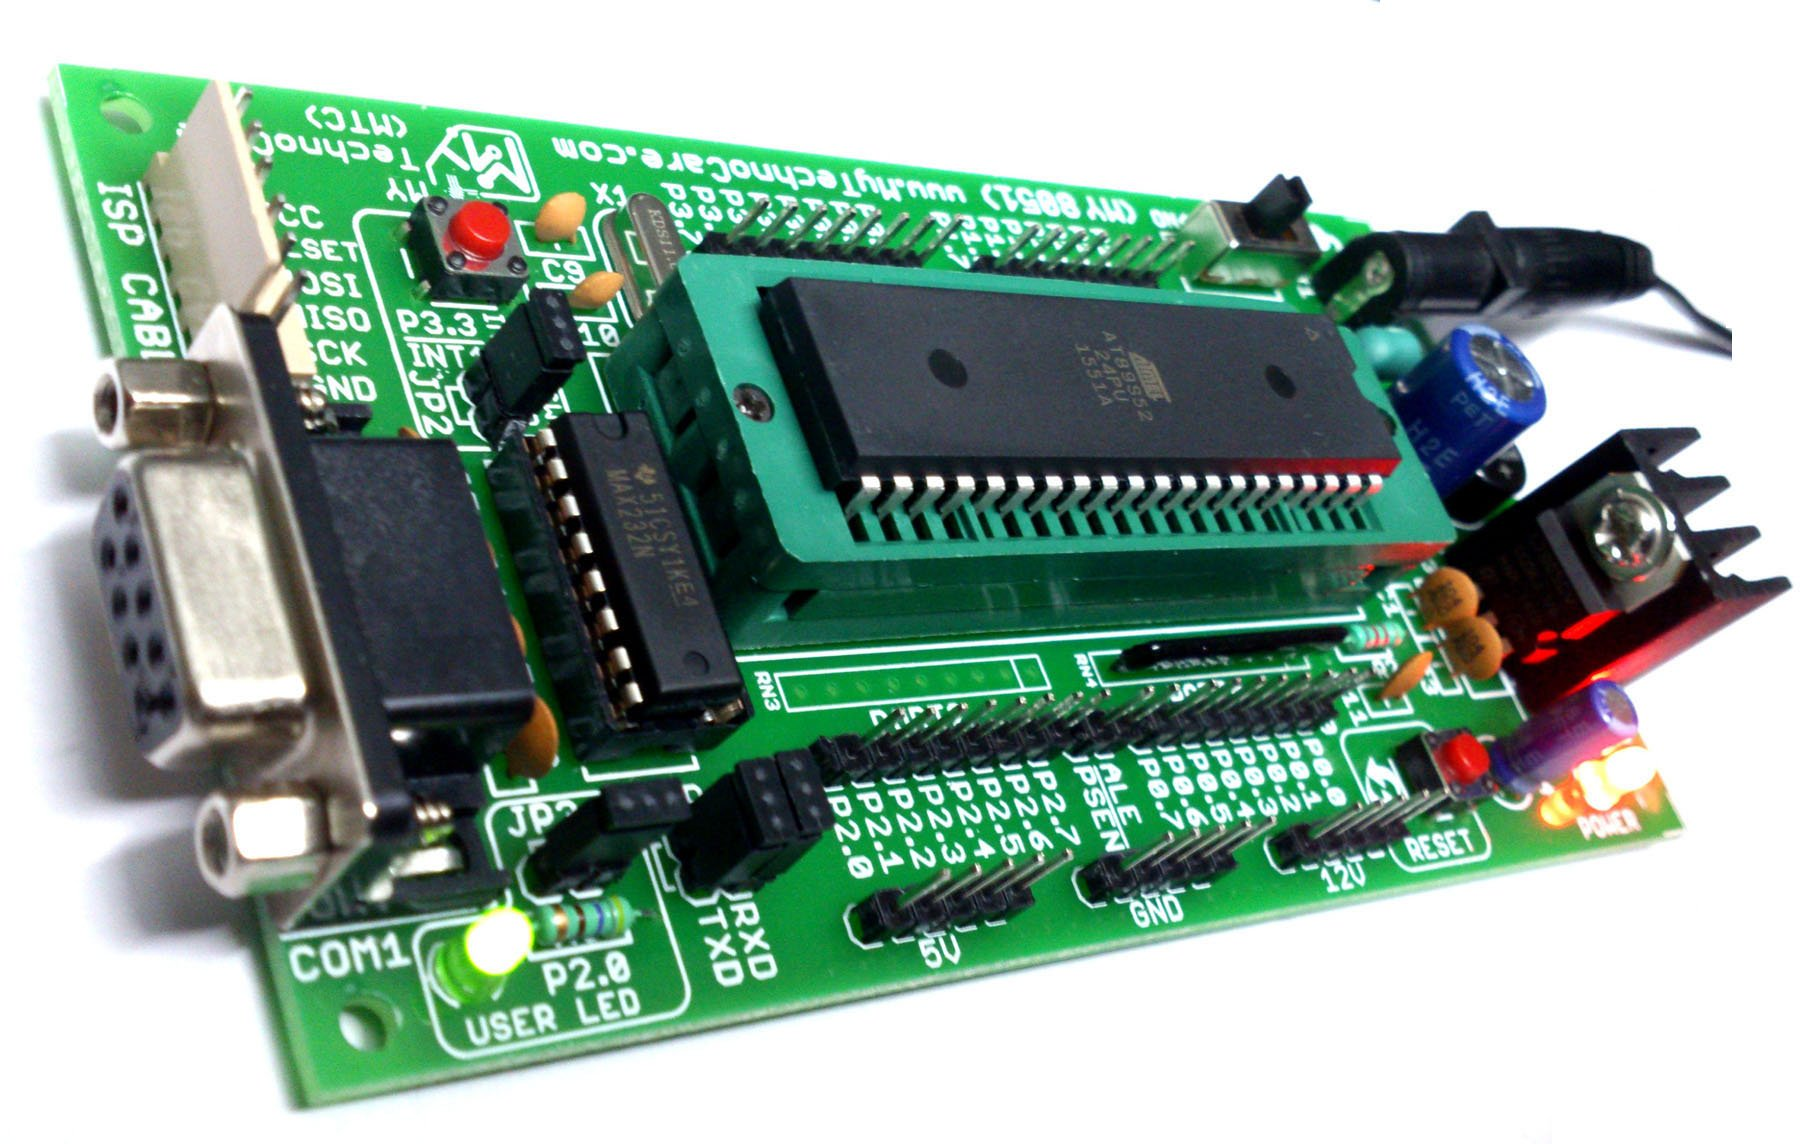 8051 microcontroller board with zif socket 8051 kit my technocare